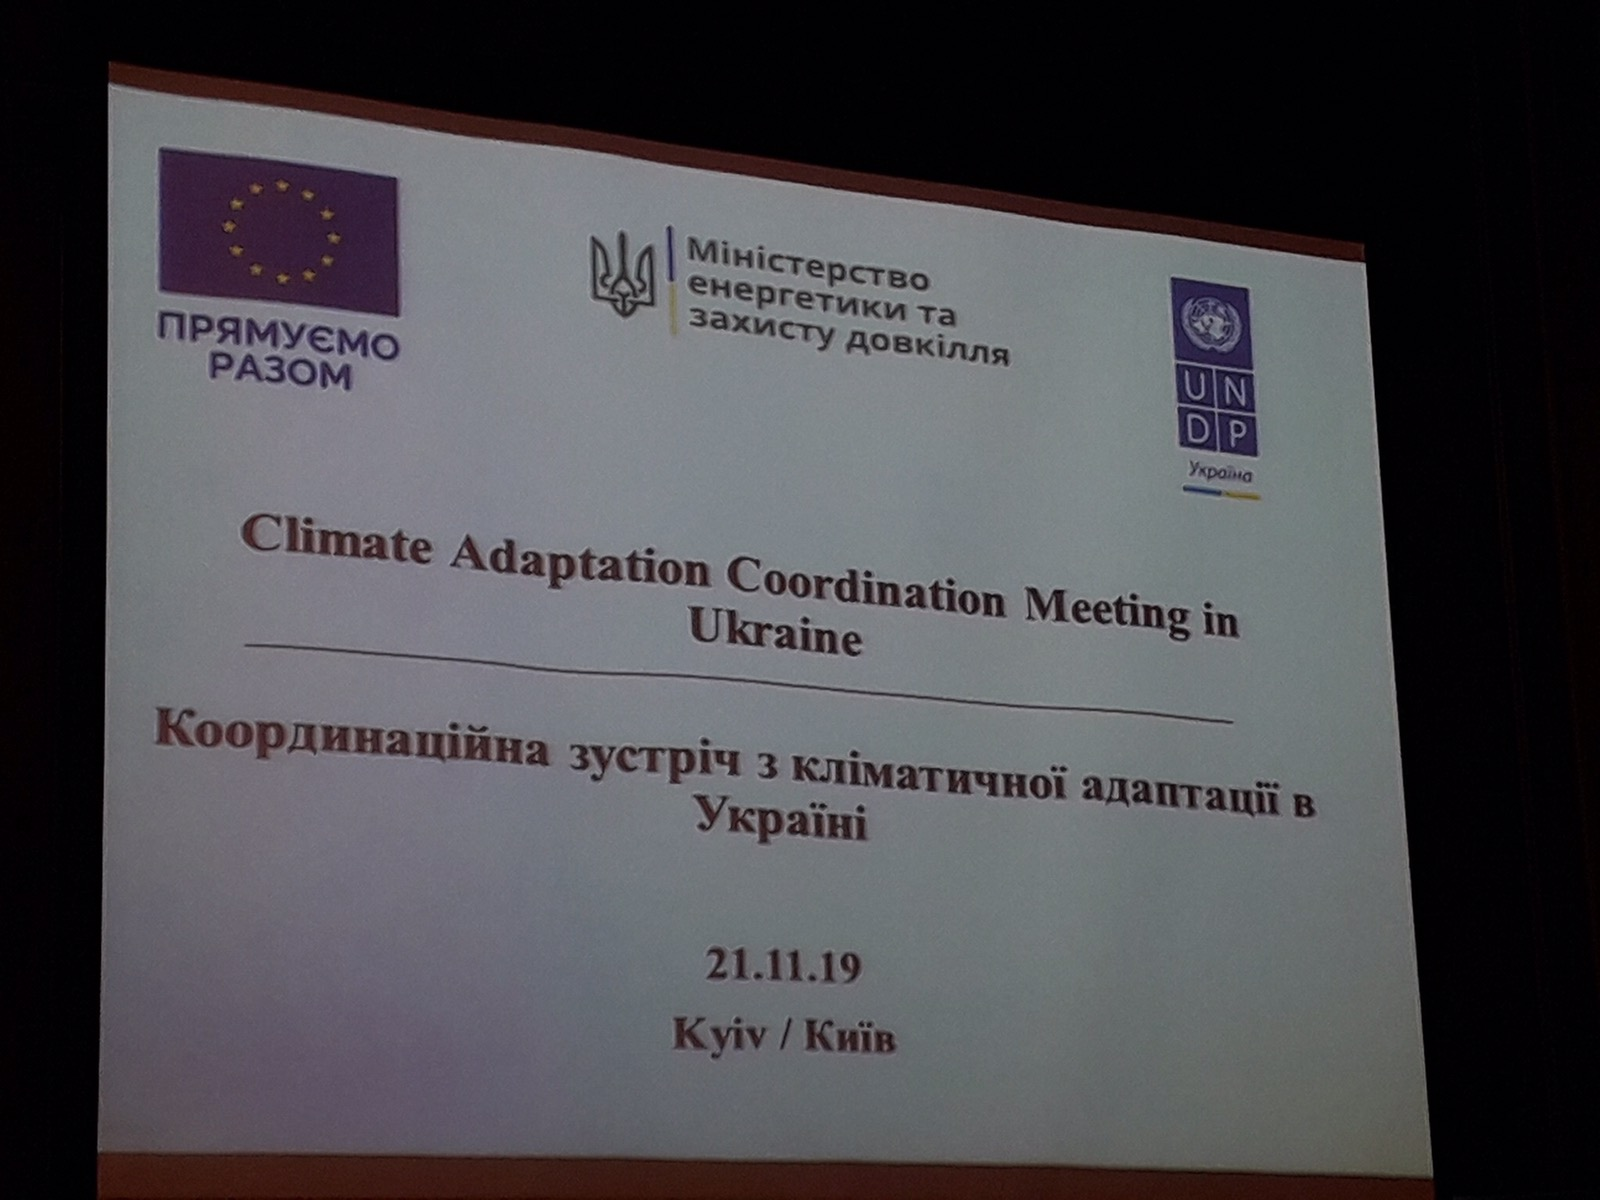 koordination meeting climate